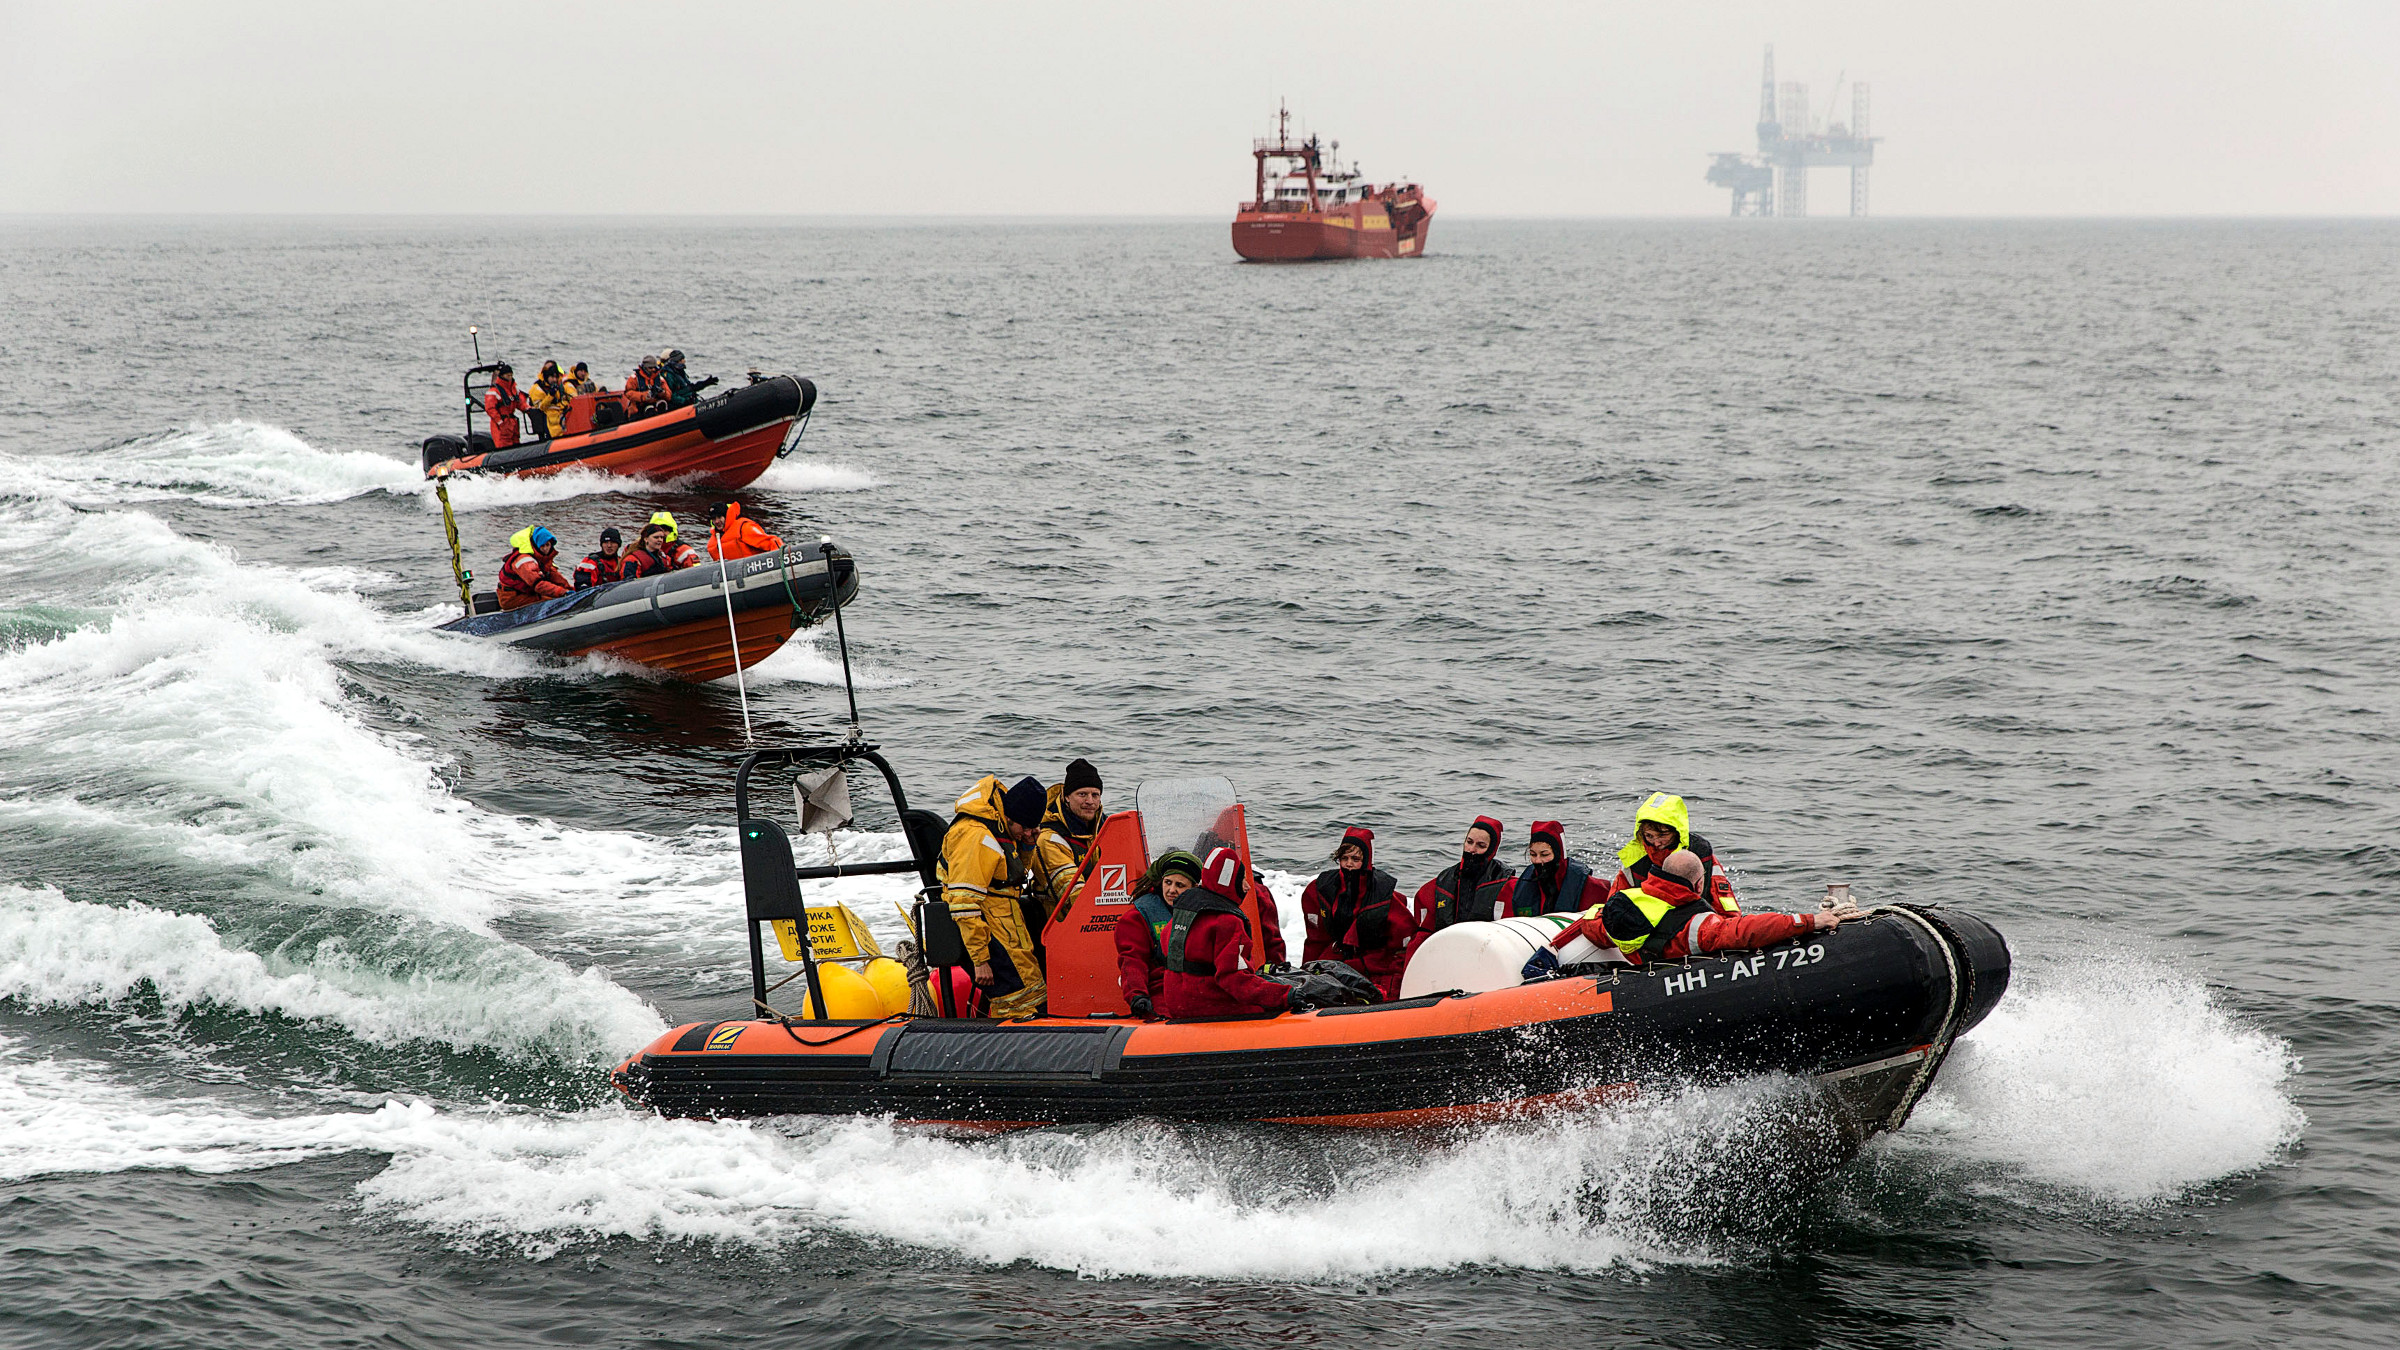 Greenpeace members speed up in a rubber speedboat while waiting for the Russian oil tanker Mikhail Ulyanov off the coast of the Hague April 30, 2014. Environmental group Greenpeace has dispatched one of its campaigning vessel to block the Mikhail Ulyanov, an oil tanker owned by Russia?s state oil firm Gazprom loaded with the first cargo of Arctic oil from the Prirazlomnaya platform.